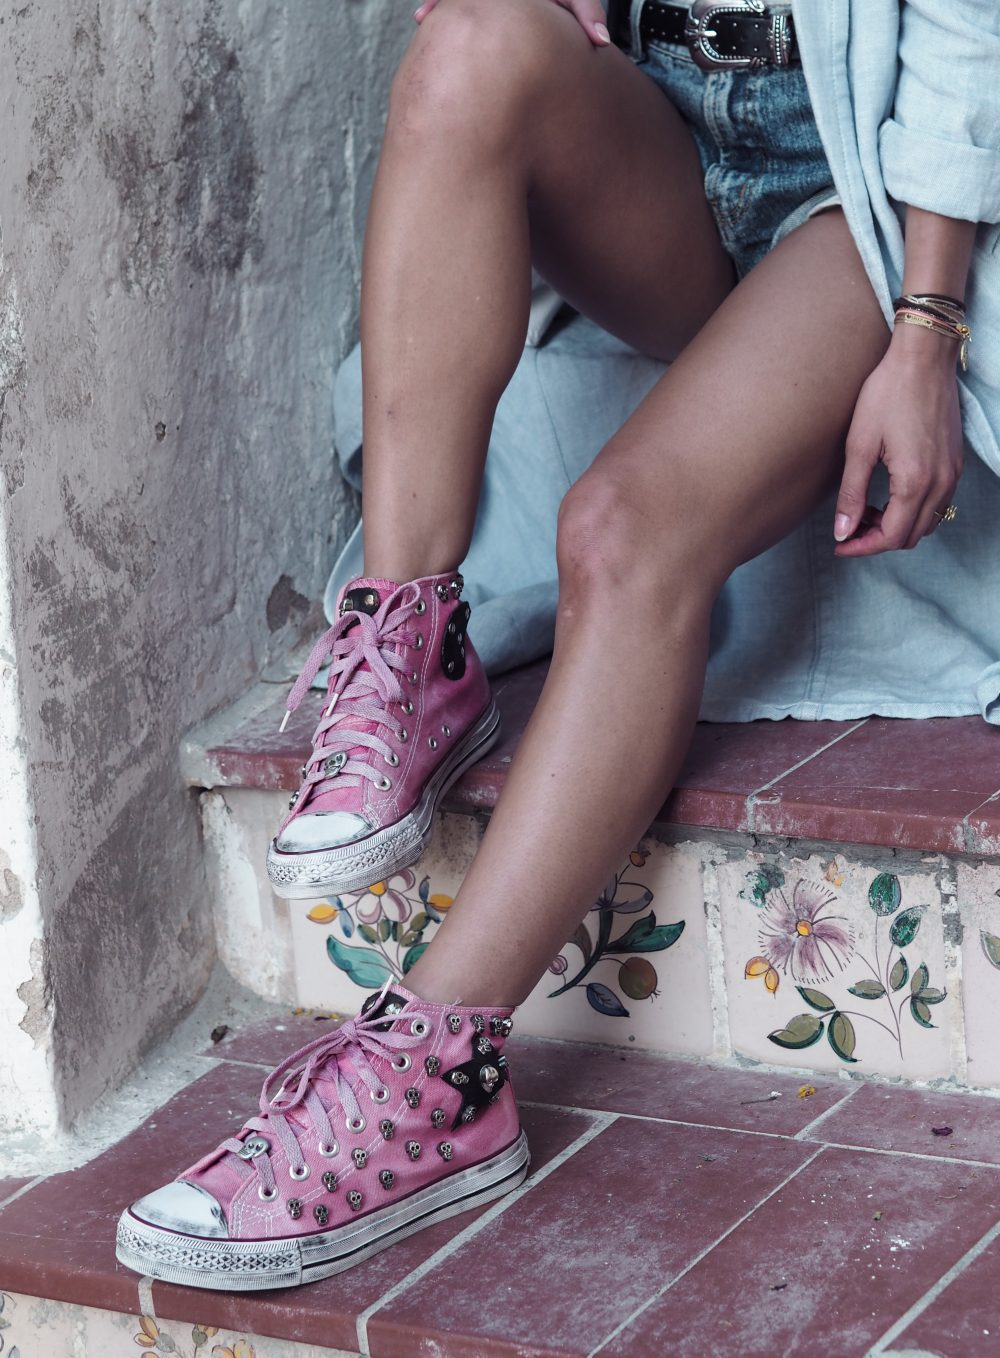 Whitney's Wonderland UK Top Fashion Blogger wears One Teaspoon bandit dehim shorts and pink converse in Dalt Vila, Ibiza